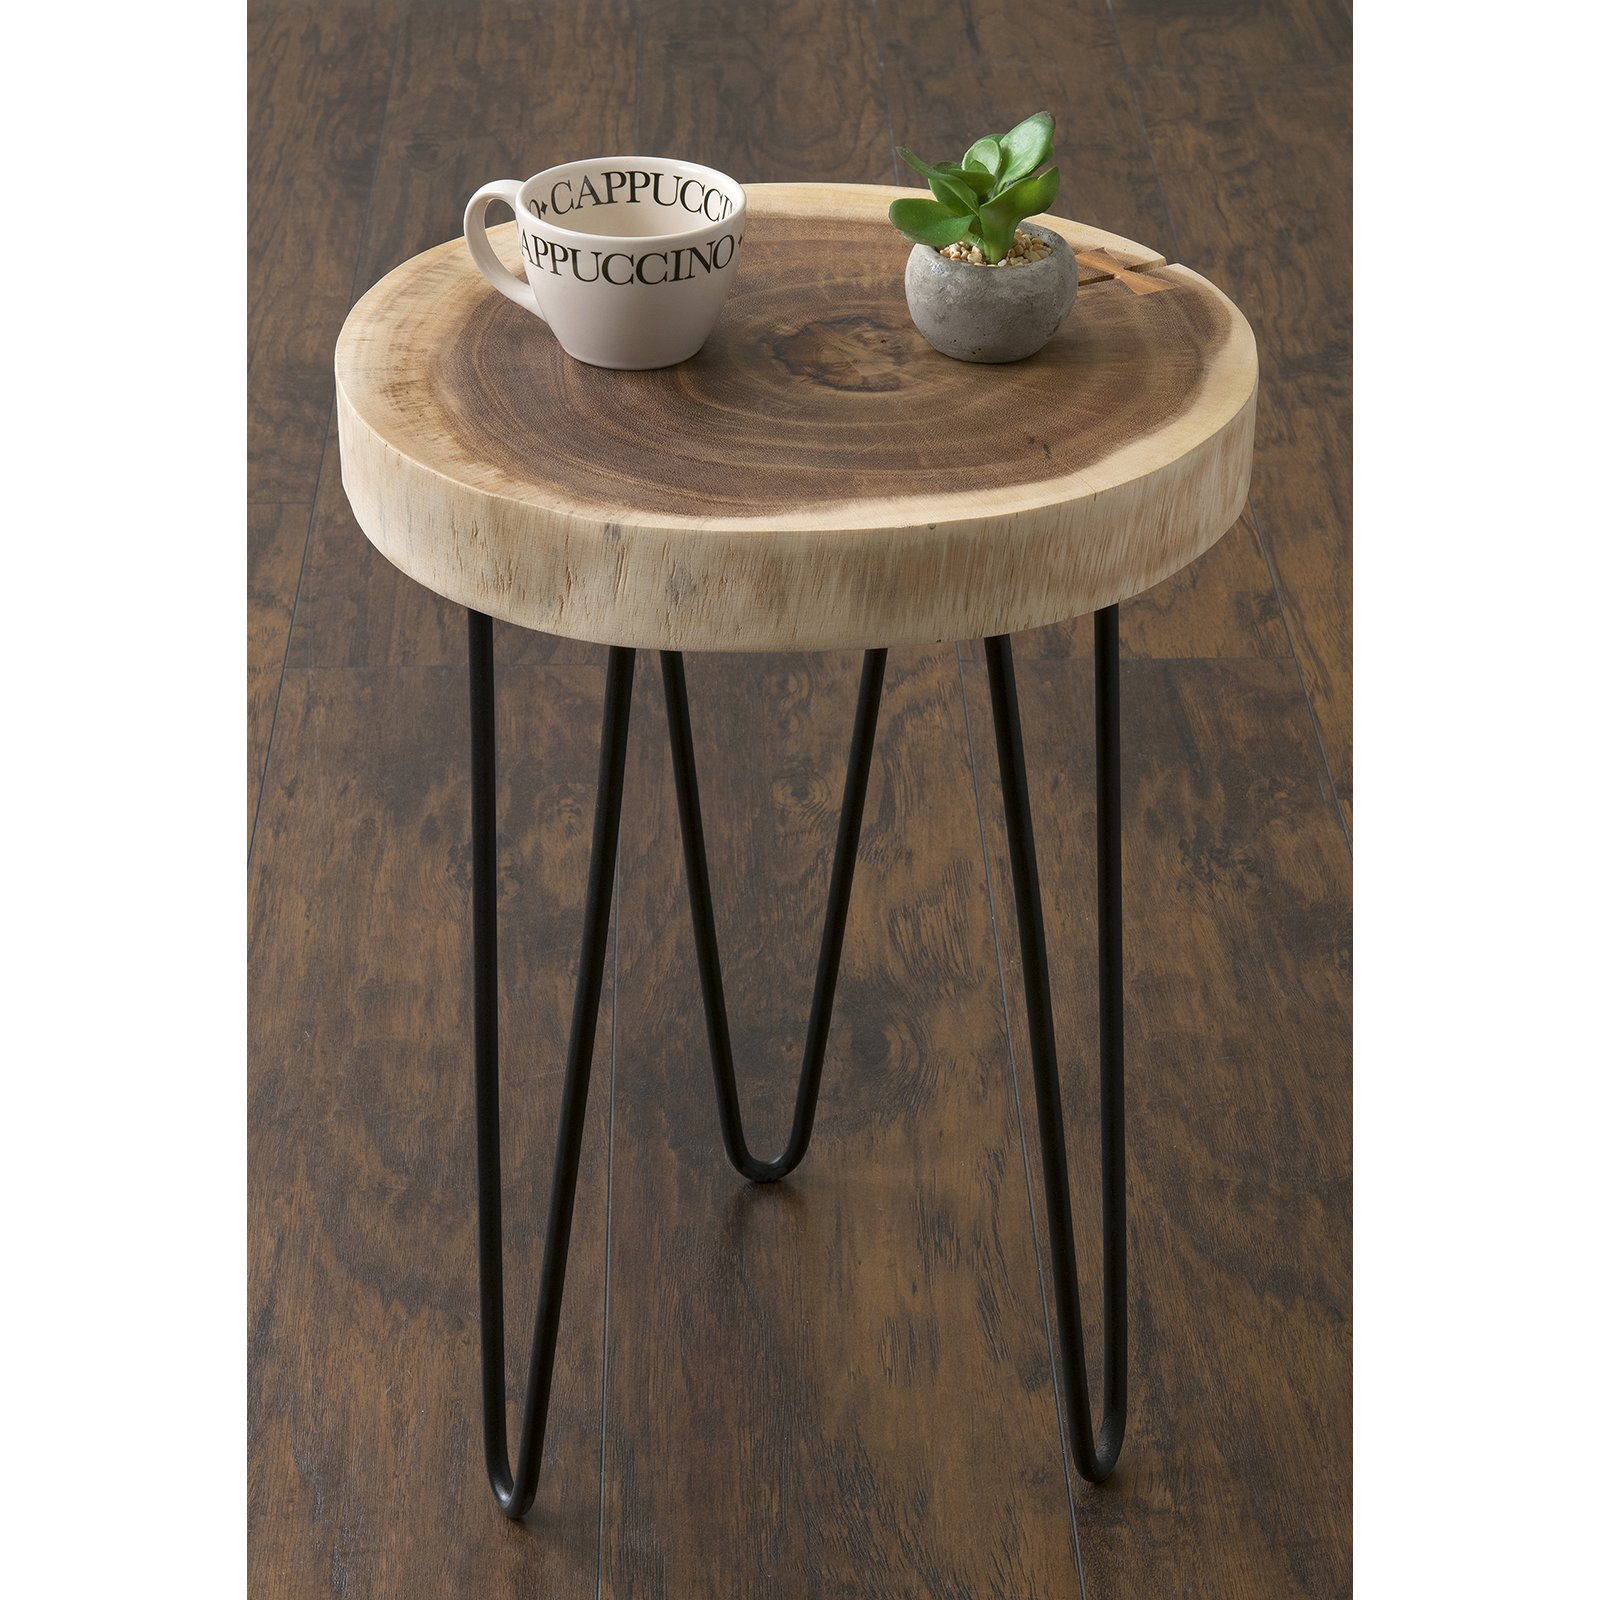 carbon loft julia brown teakwood round accent table east mains laredo teak free shipping today crystal bedside lamps pottery barn side lamp shades placemats and coasters silver